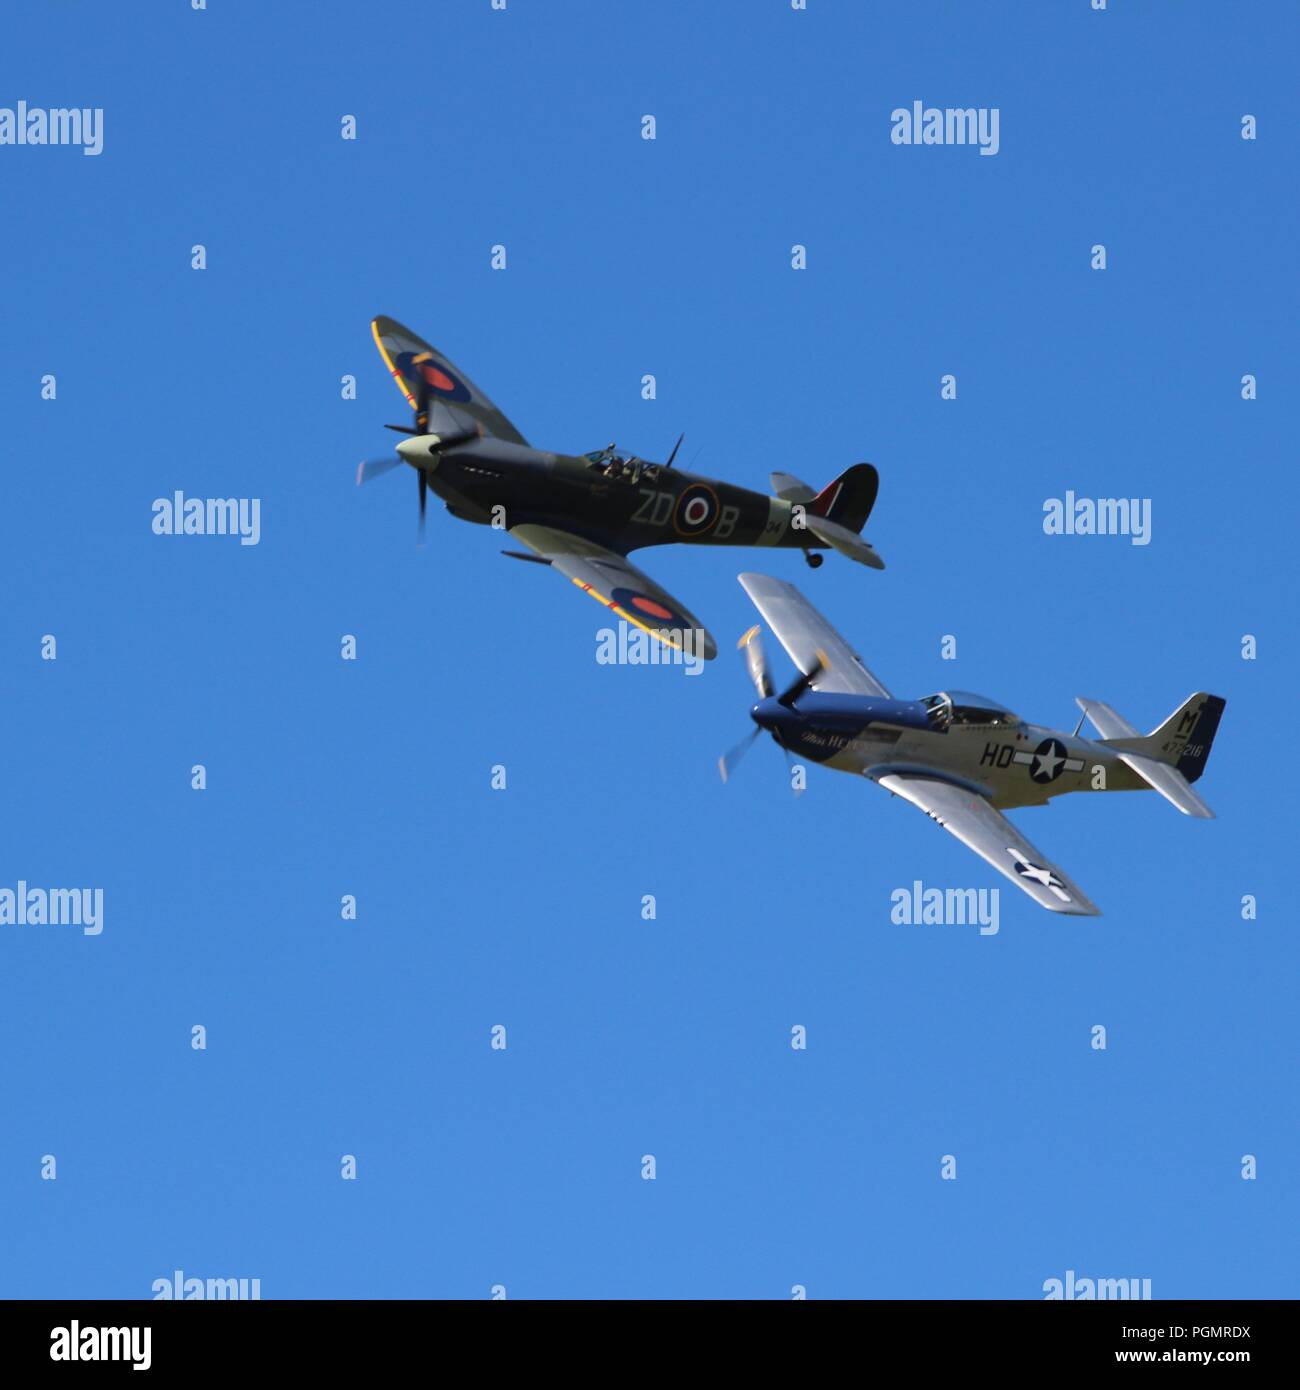 Spitfire & Mustang Air Display at the 2016 Goodwood Revival - Stock Image